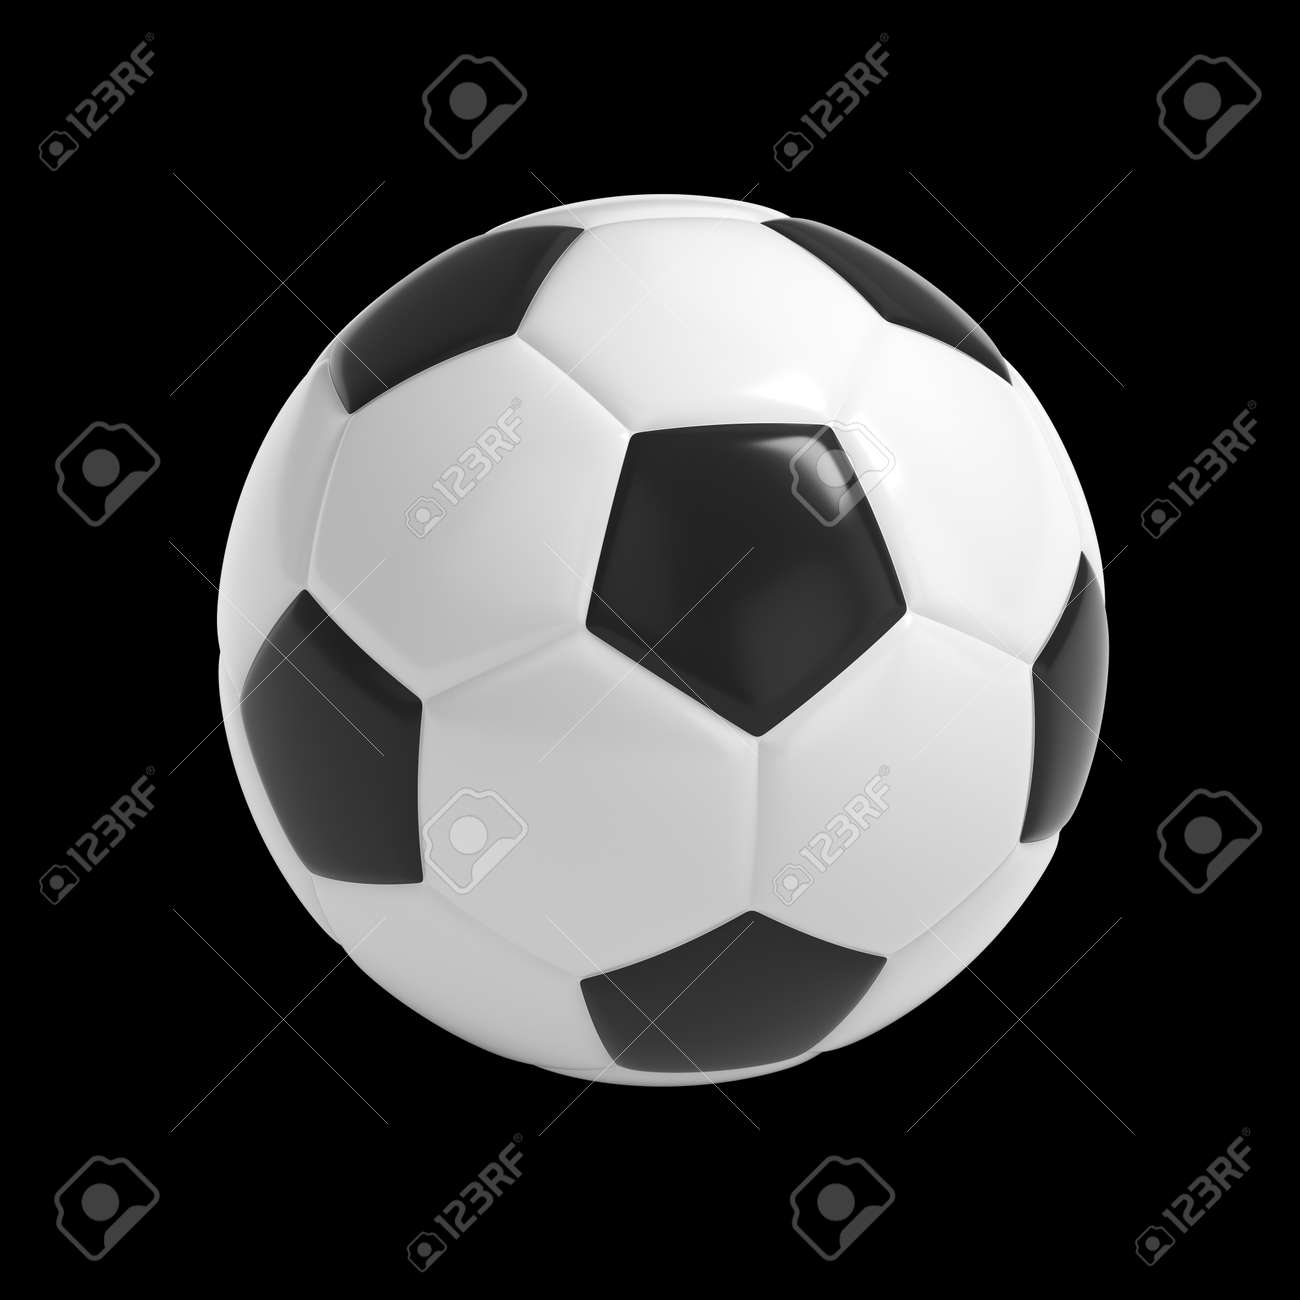 Football - Soccer ball HQ 3D render isolated with clipping path on black - 45142043